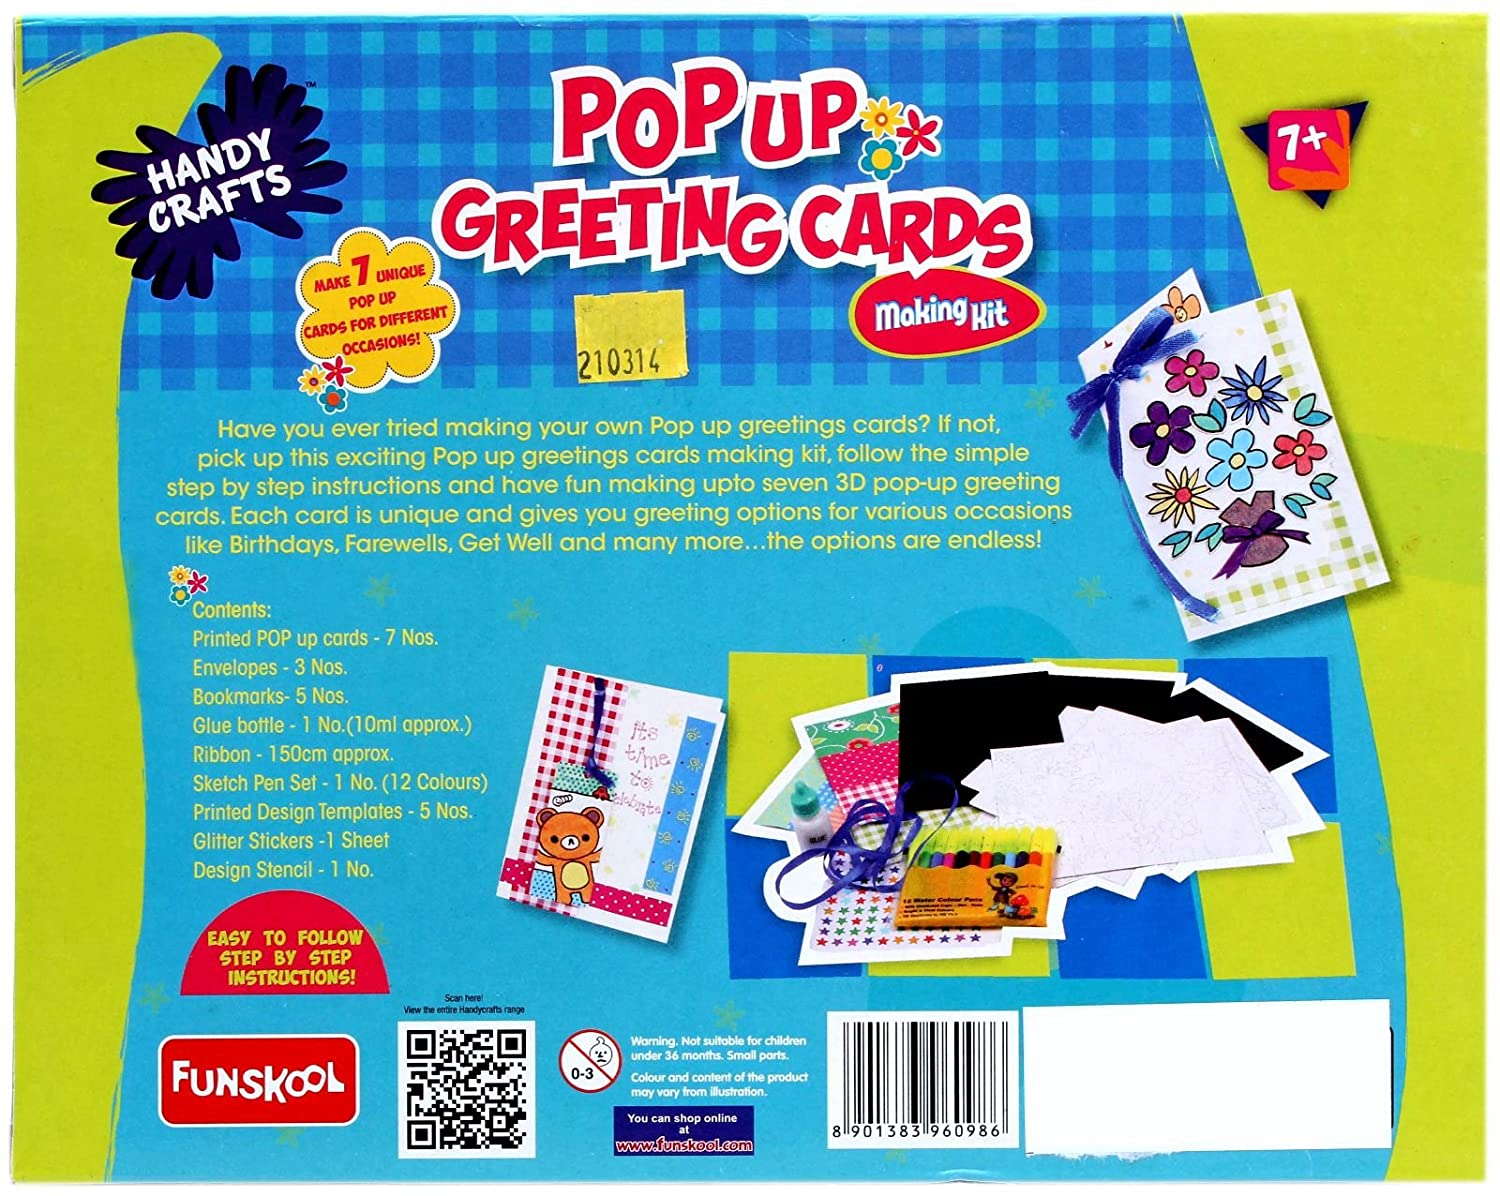 Color your card get well - Handy Crafts Pop Up Greeting Cards Multi Color Amazon In Toys Games